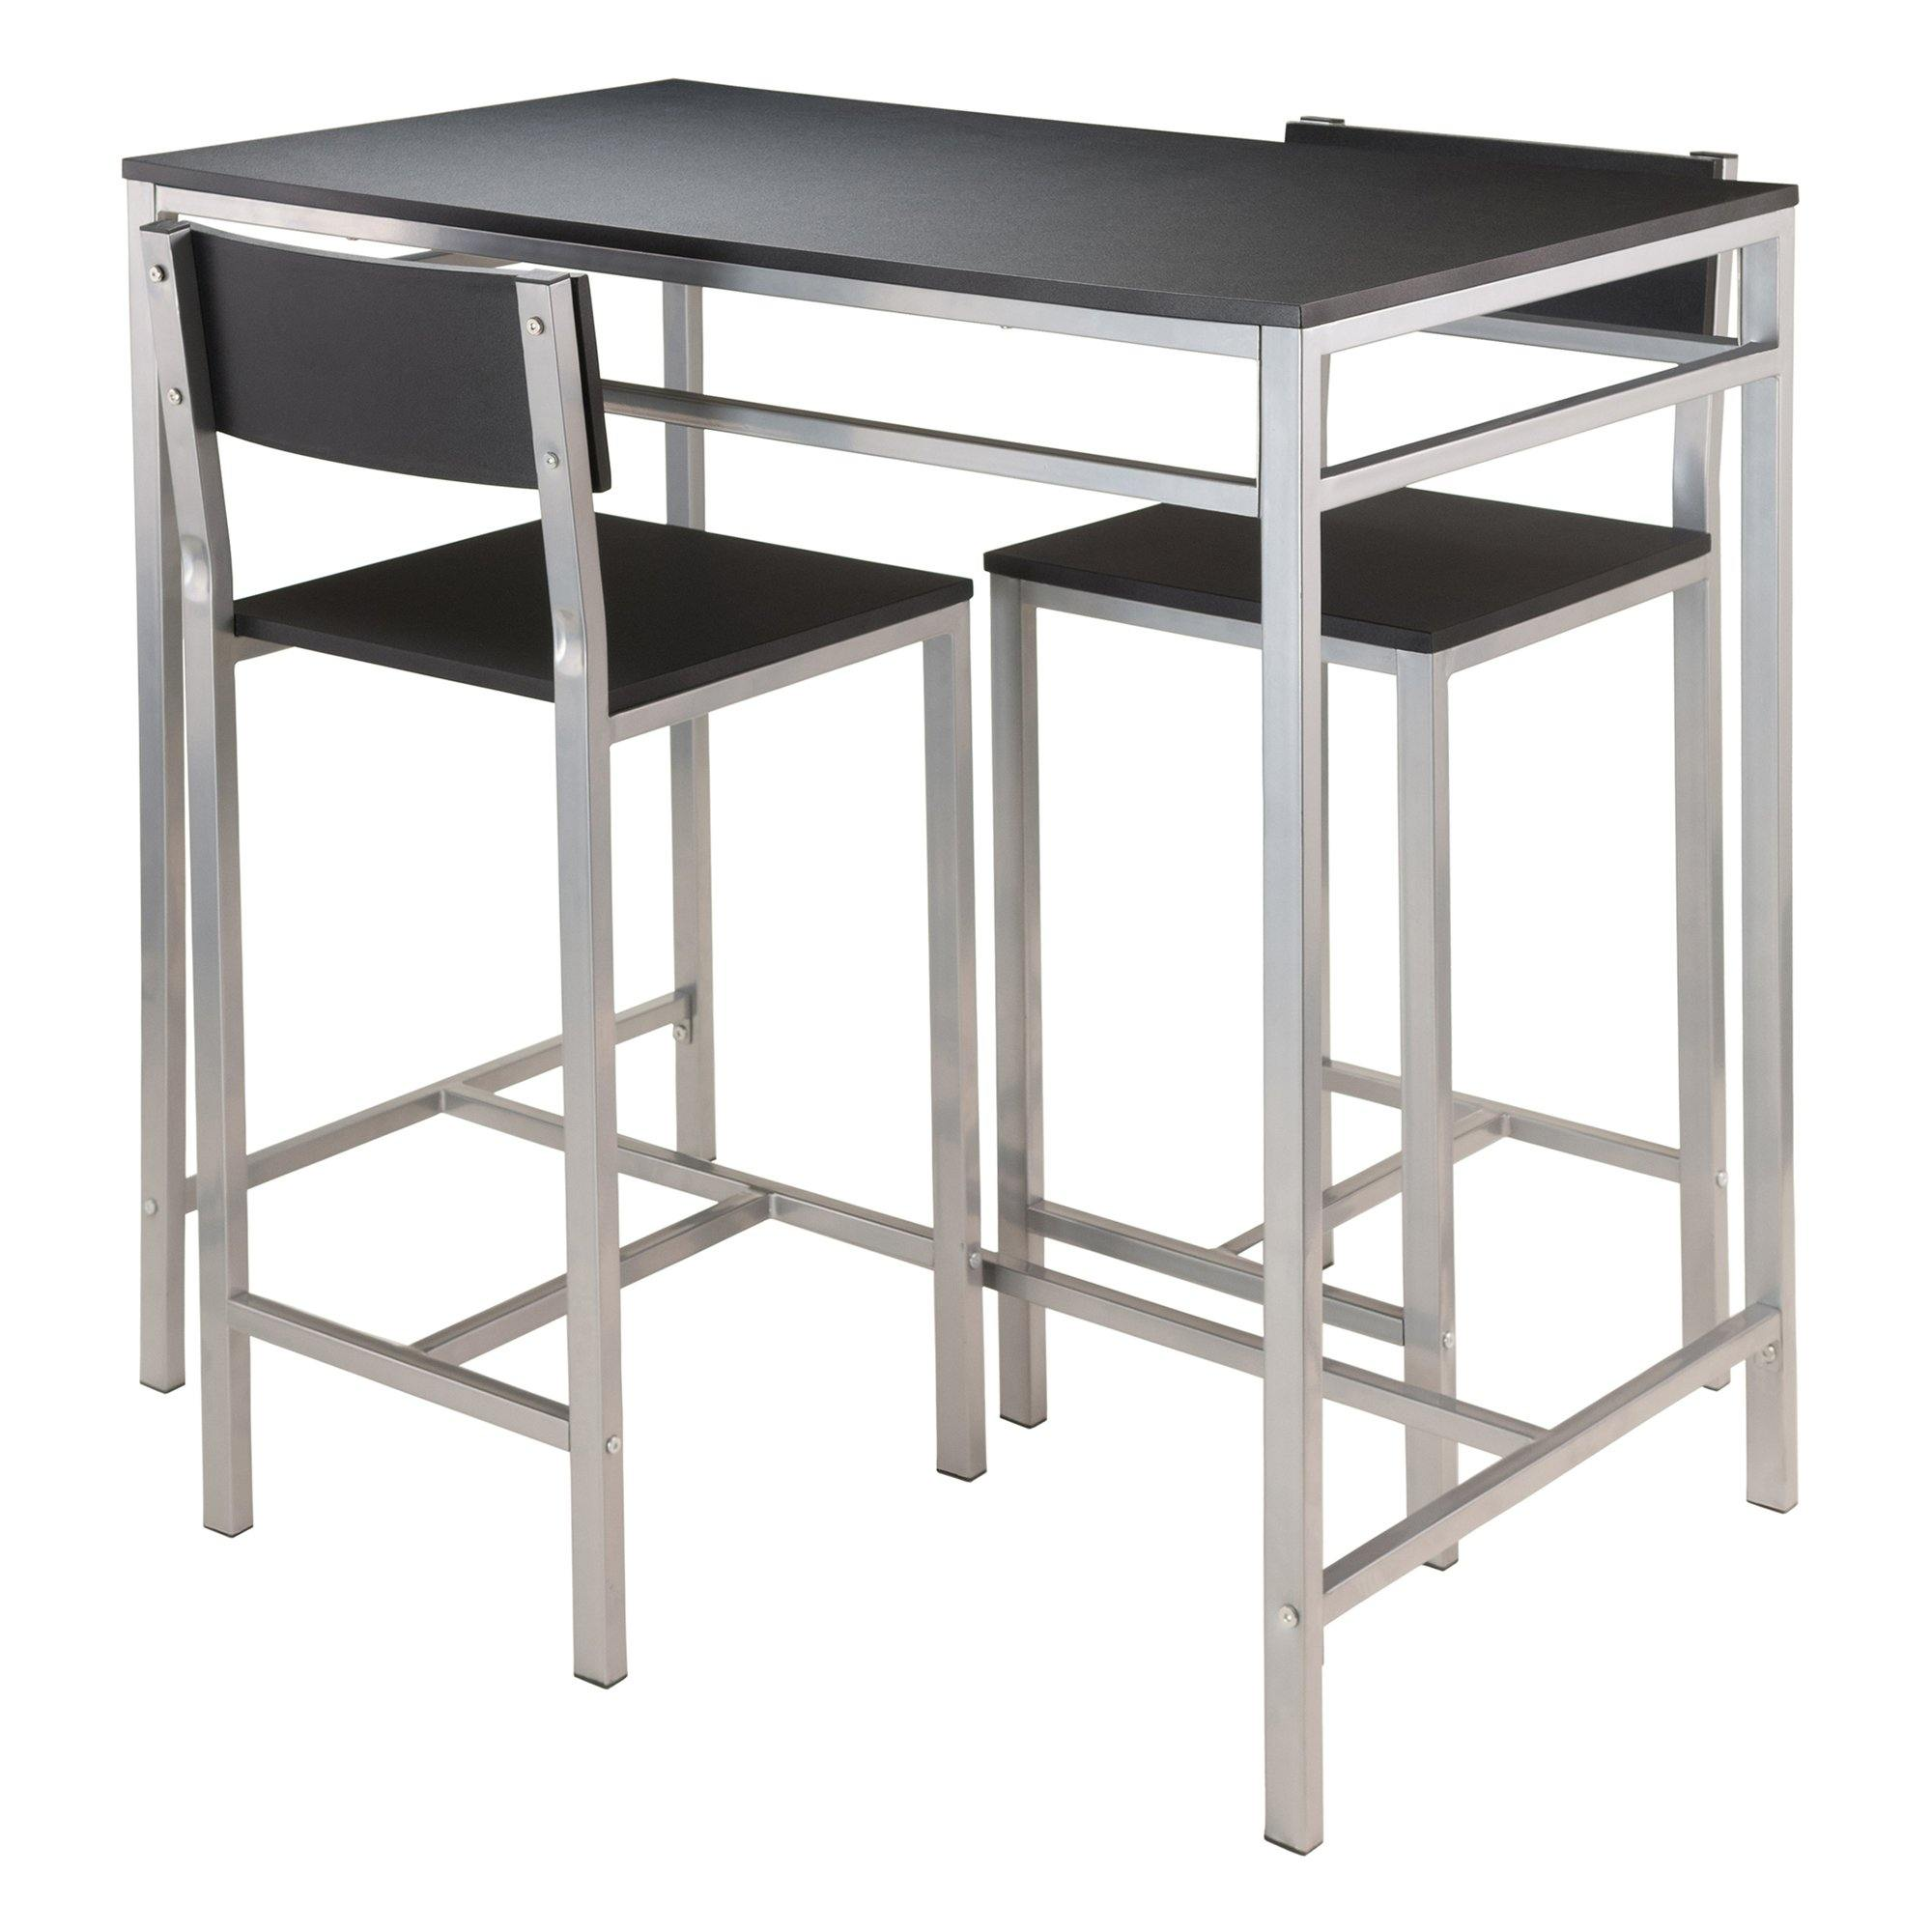 3 Piece Table Set, Metal Frame And Black MDF Top - My USA Furniture